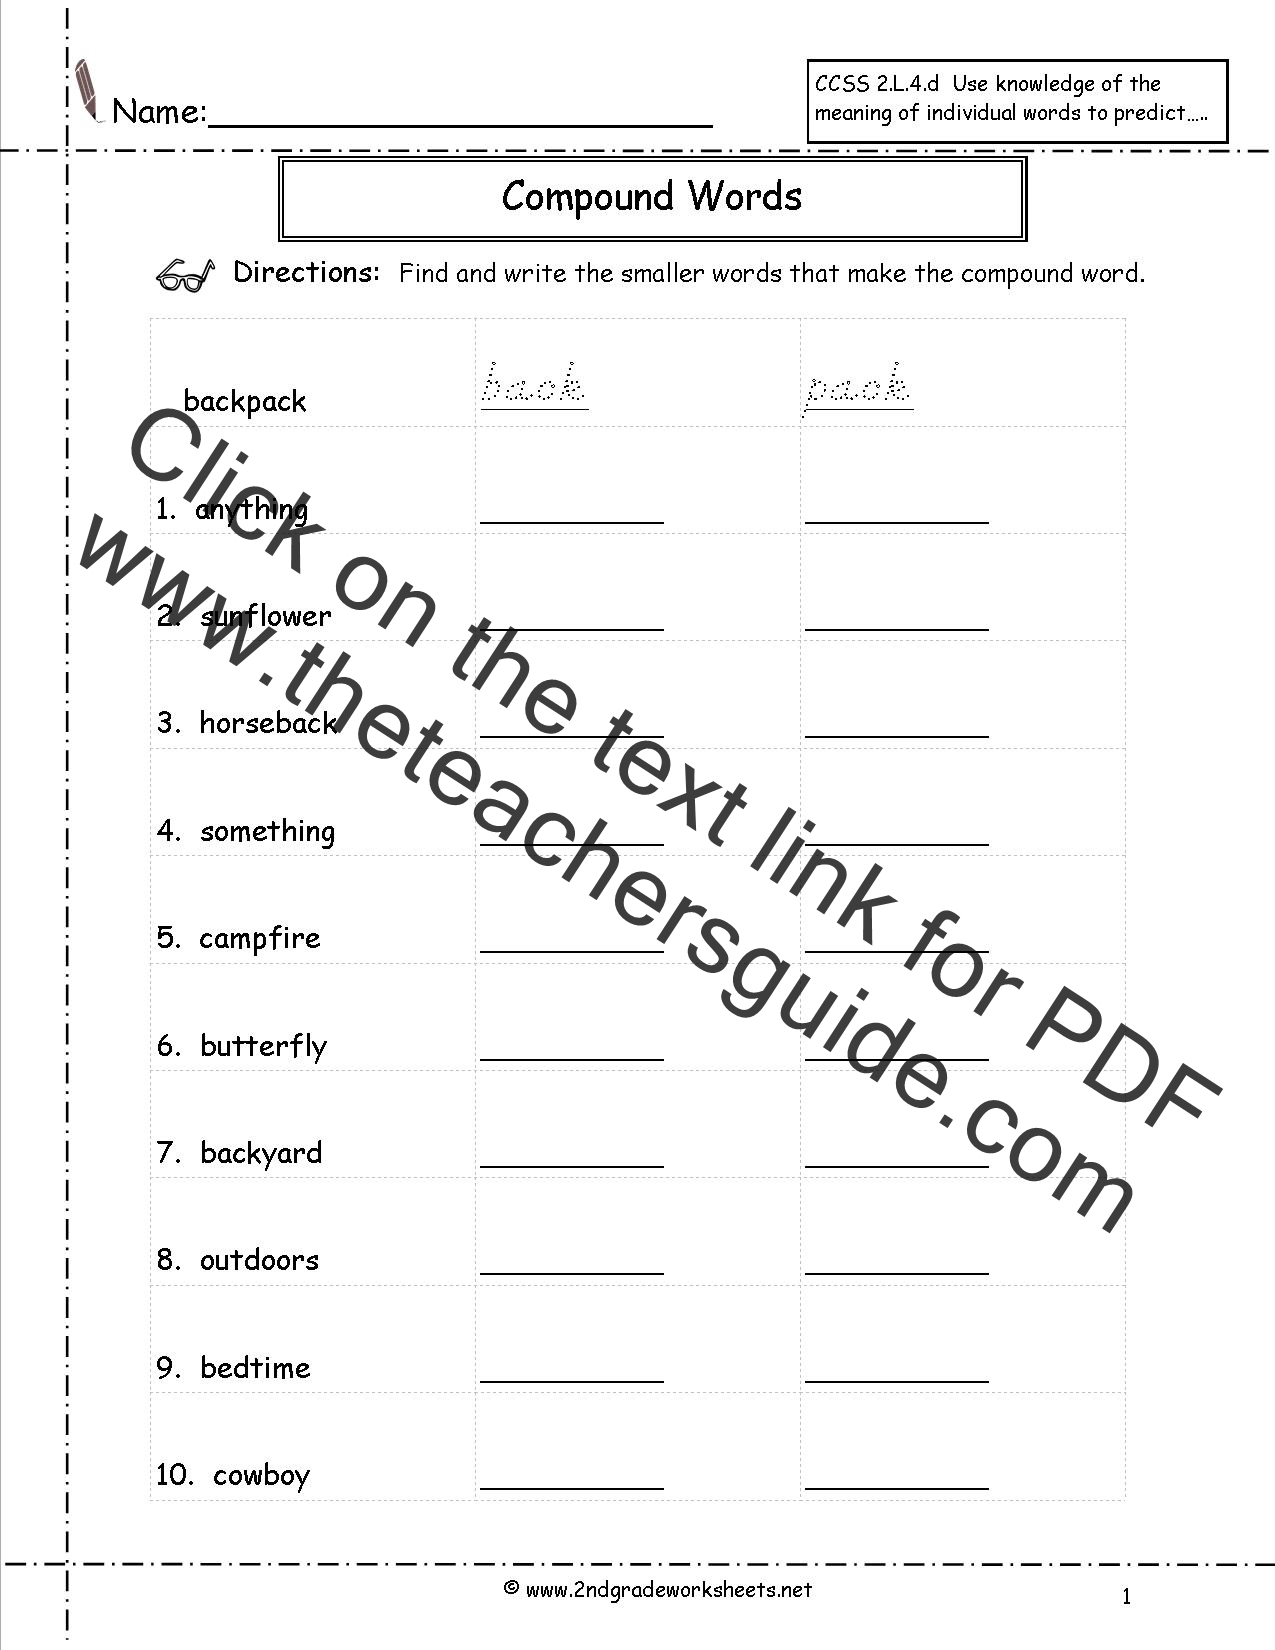 Worksheets 2nd Grade Language Arts Worksheets free languagegrammar worksheets and printouts compound words worksheets